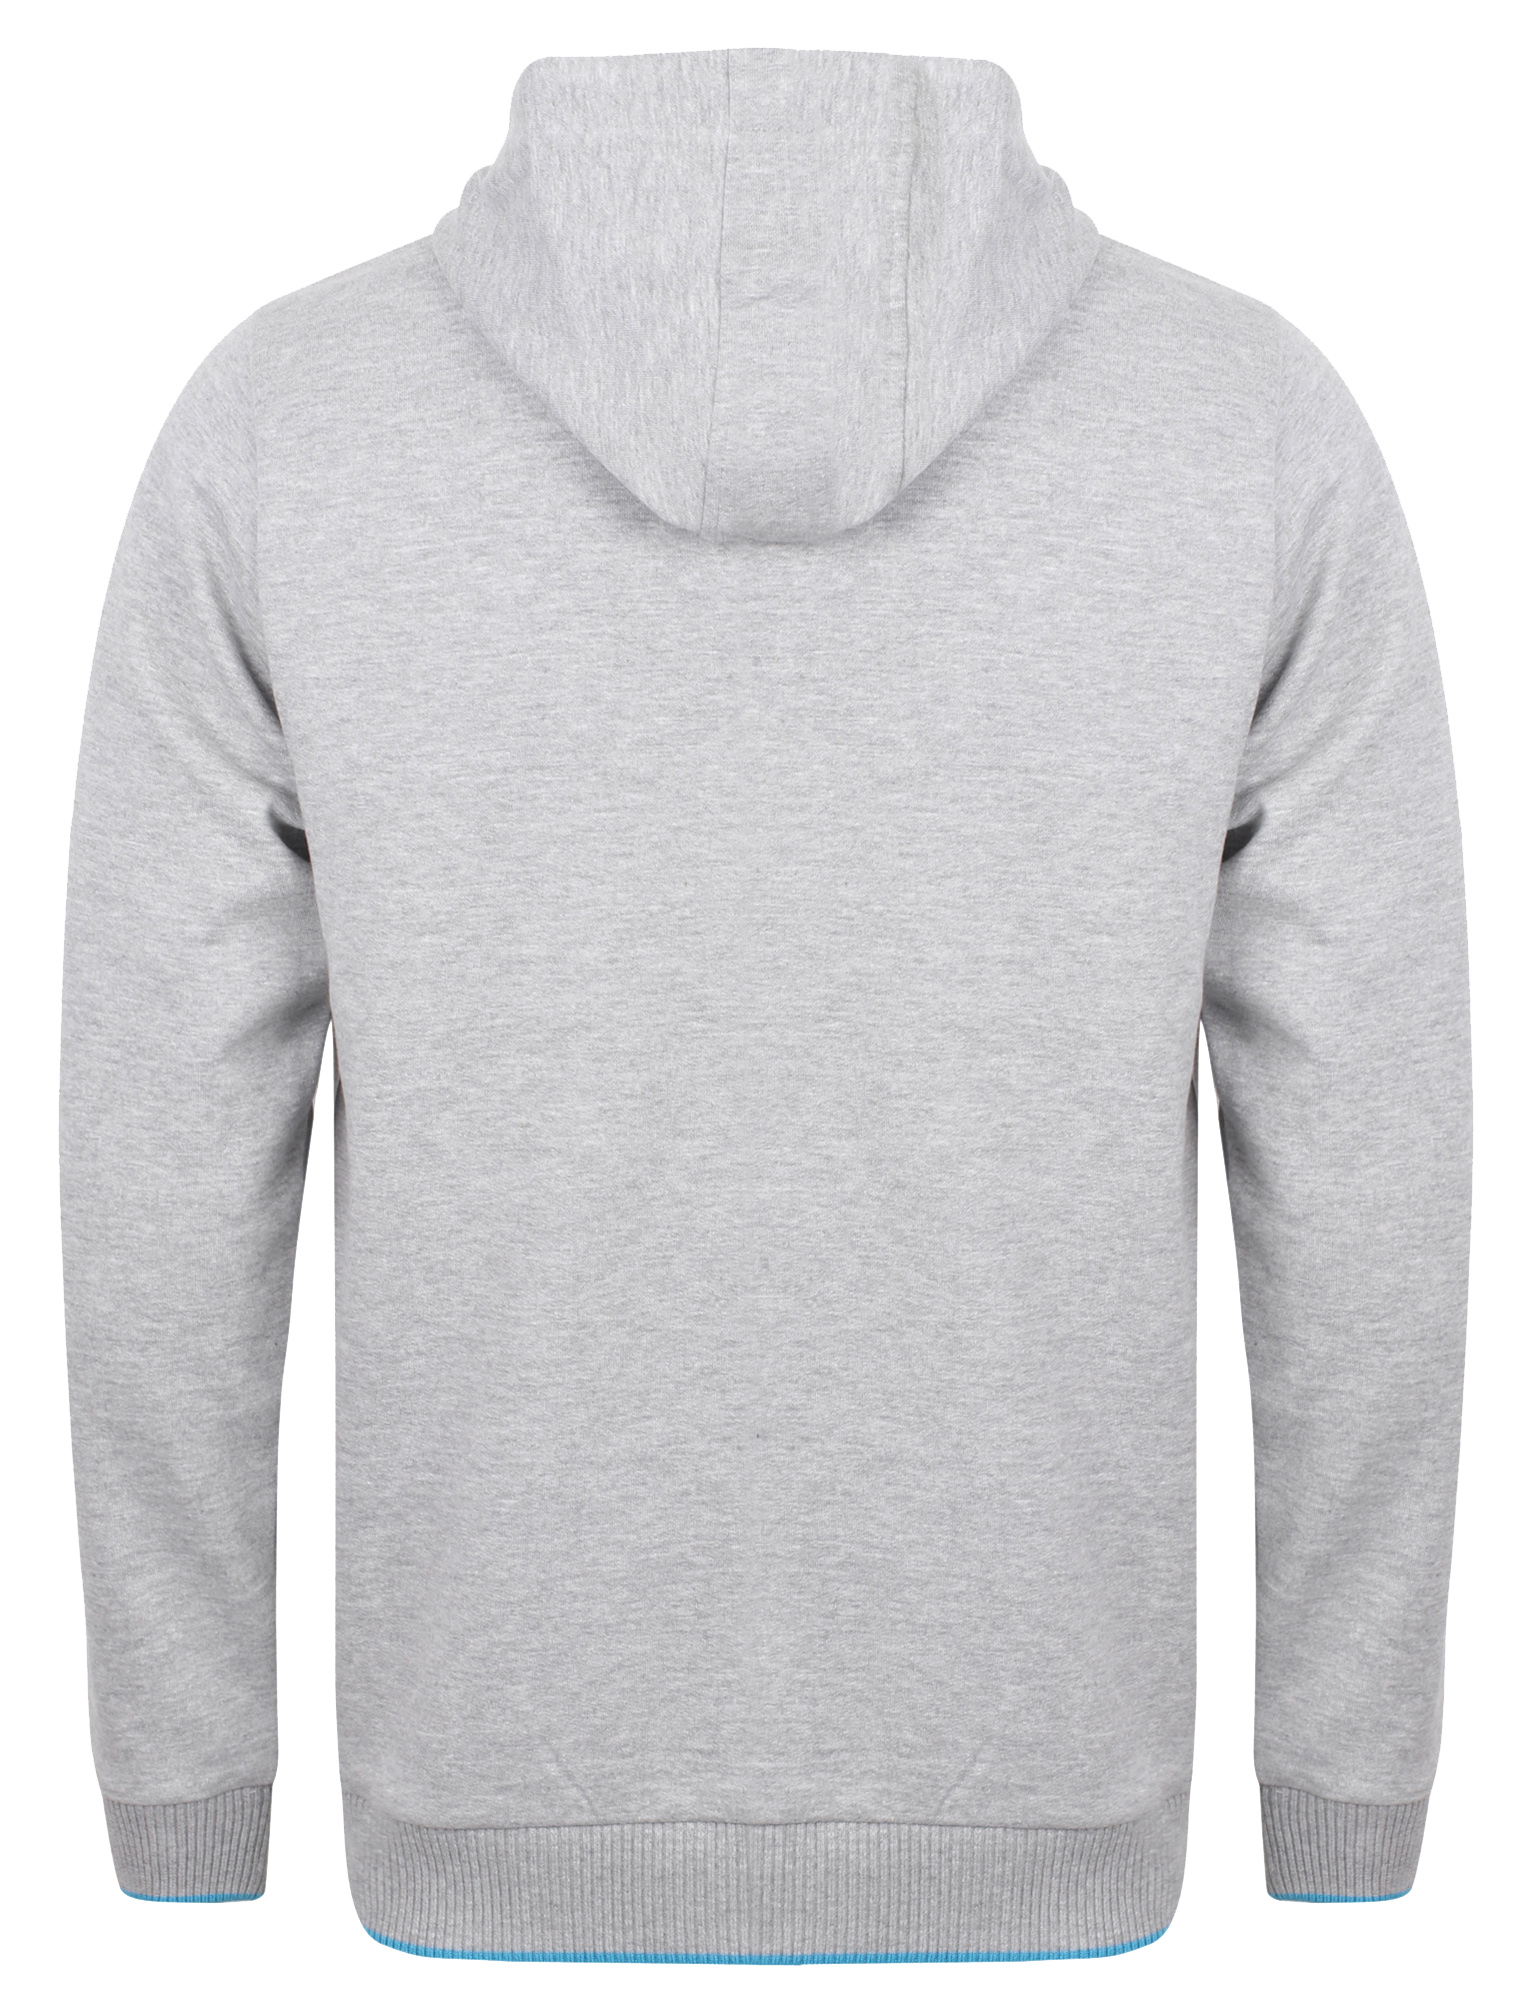 New-Mens-Tokyo-Laundry-Hanover-Cotton-Rich-Zip-Up-Contrast-Hoodie-Size-S-XXL thumbnail 3